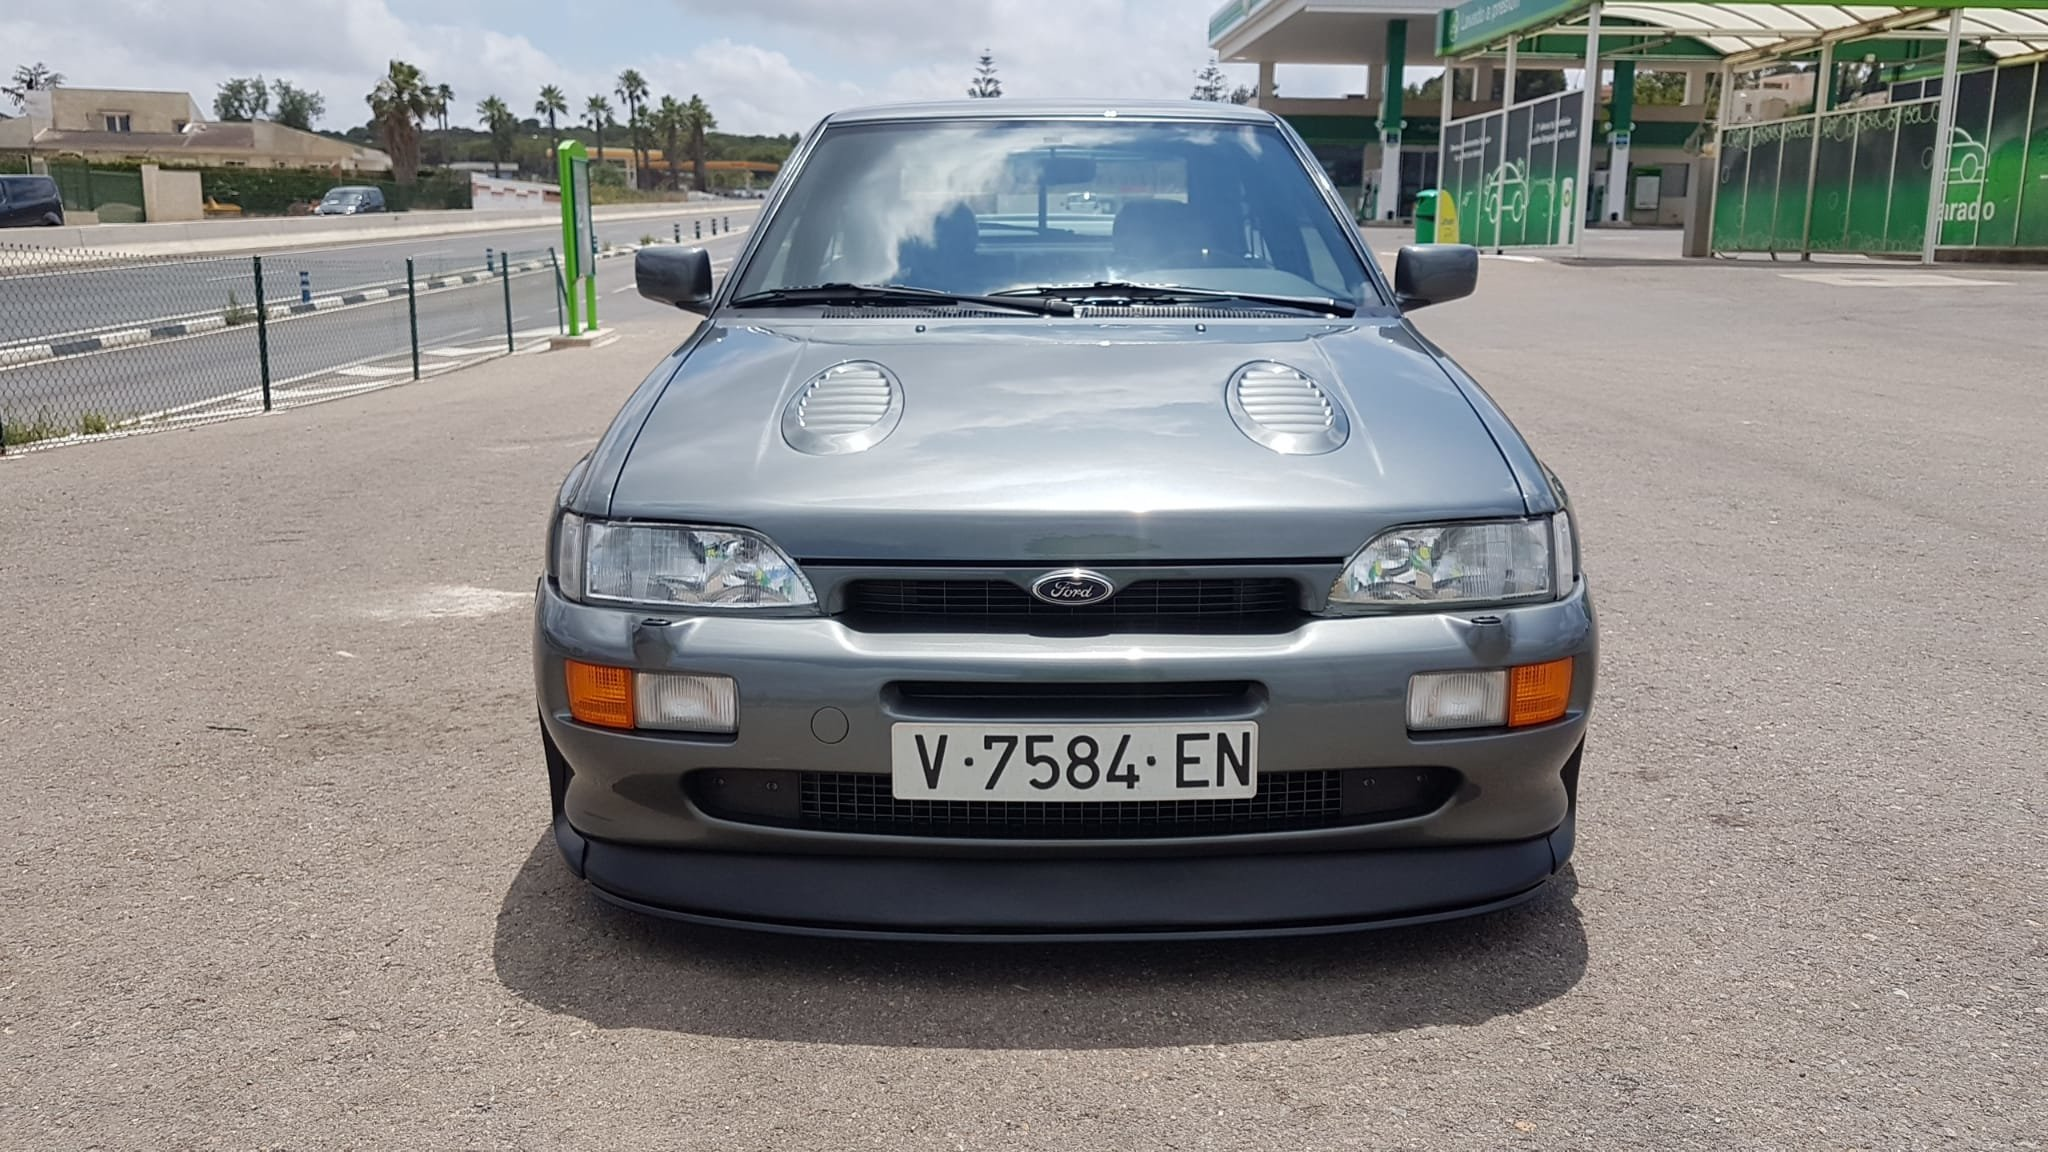 1993 Ford Scort RS conworth For Sale (picture 5 of 6)